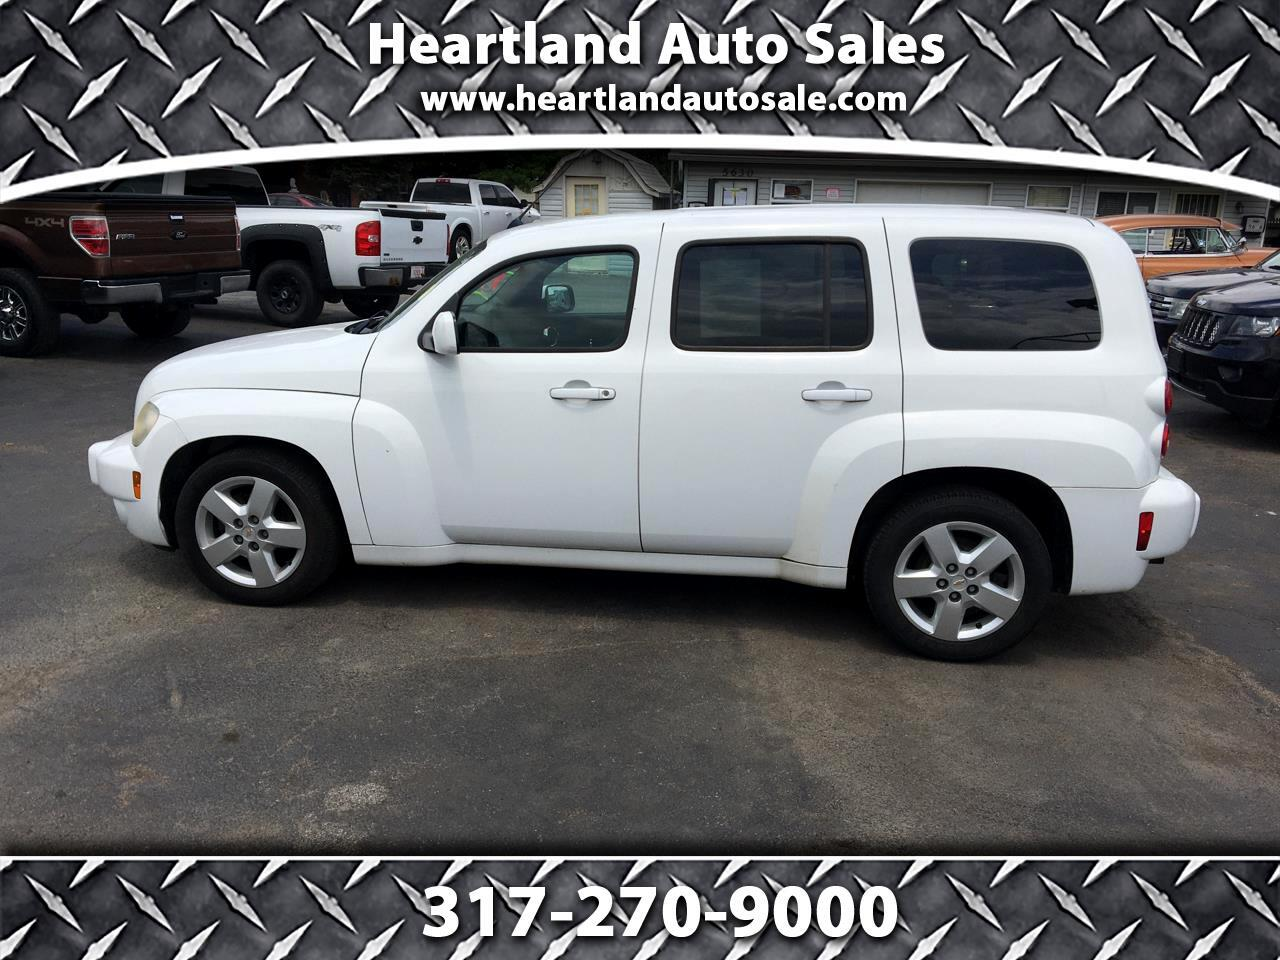 Used 2011 Chevrolet Hhr Fwd 4dr Lt W 1lt For Sale In Indianapolis